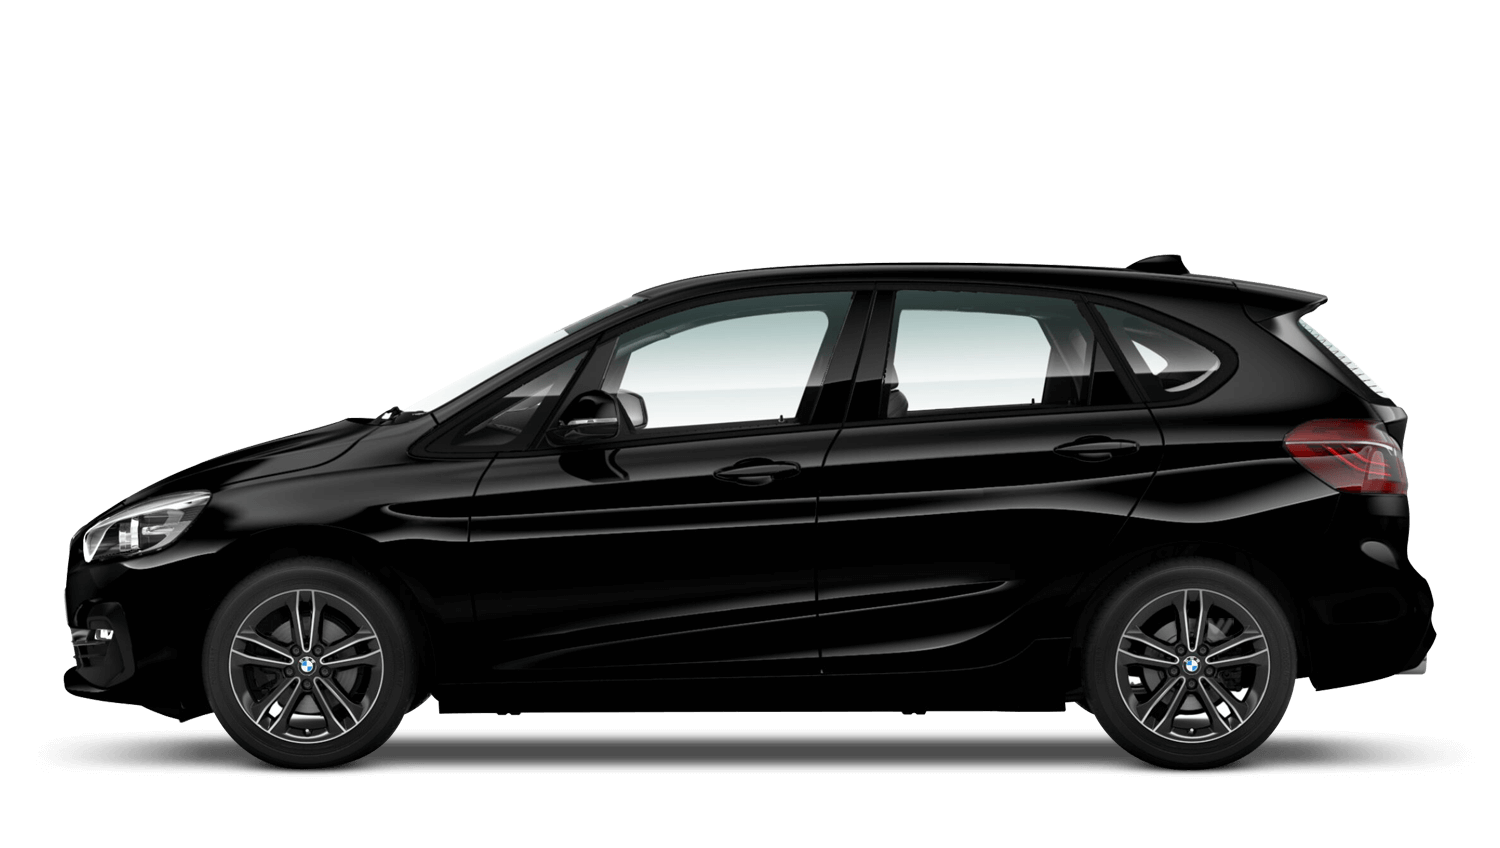 Jet Black (Solid) BMW 2 Series Active Tourer